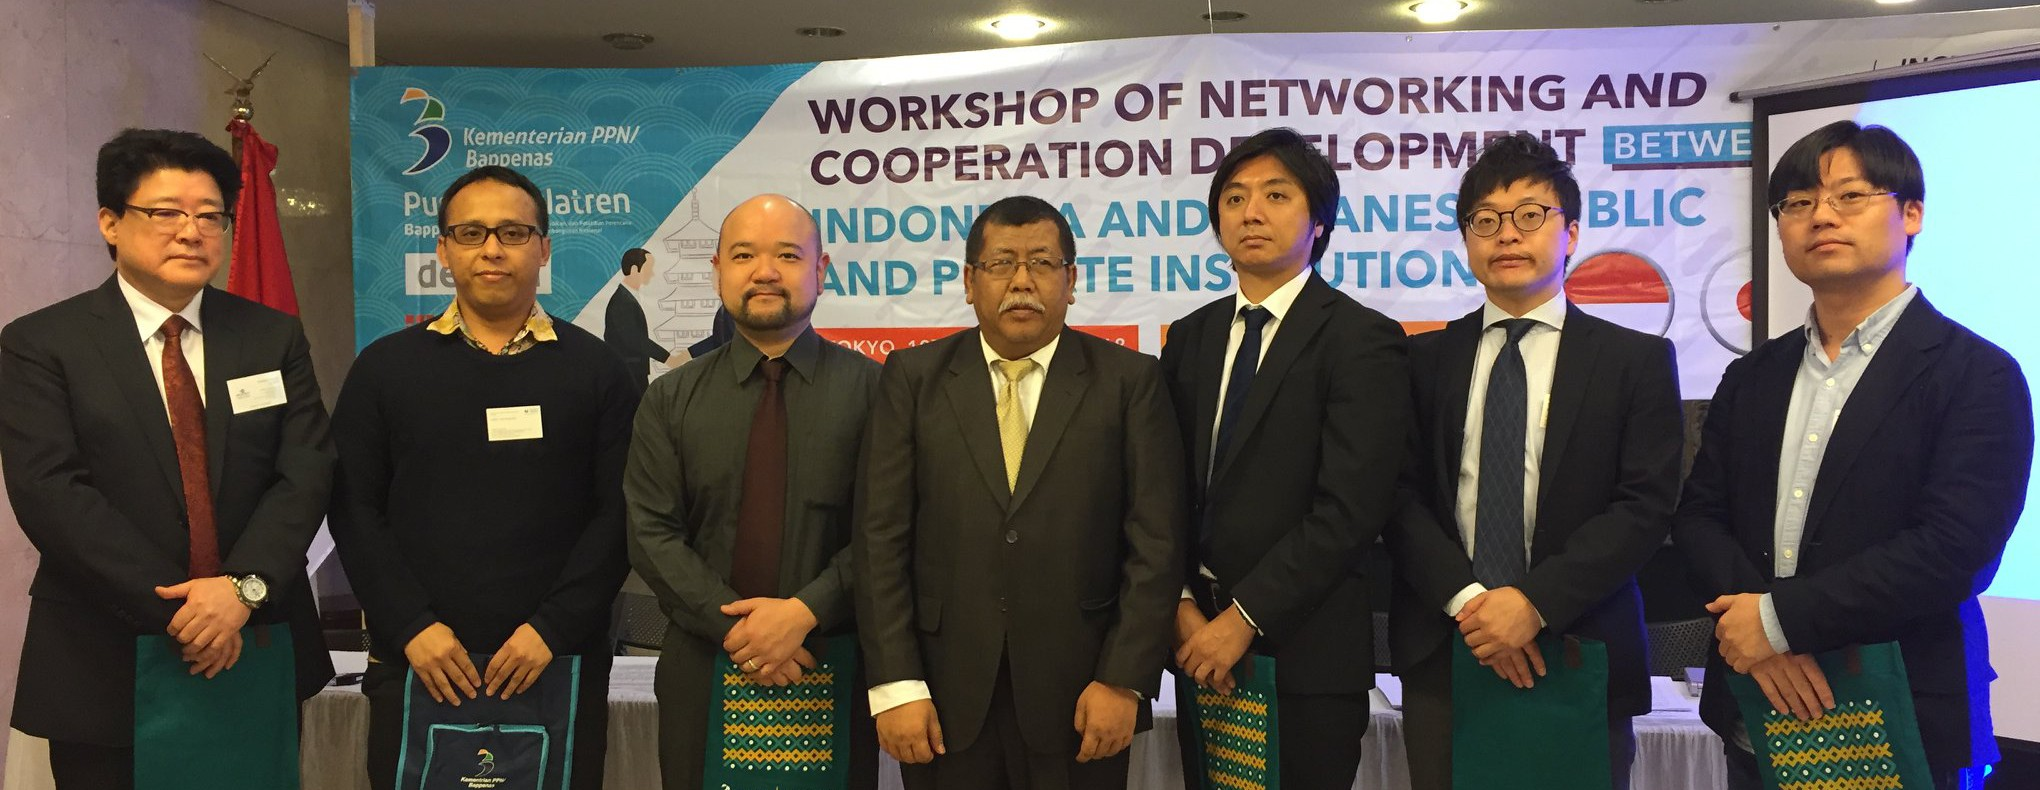 Workshop Networking and Cooperation Development Indonesia-Japan